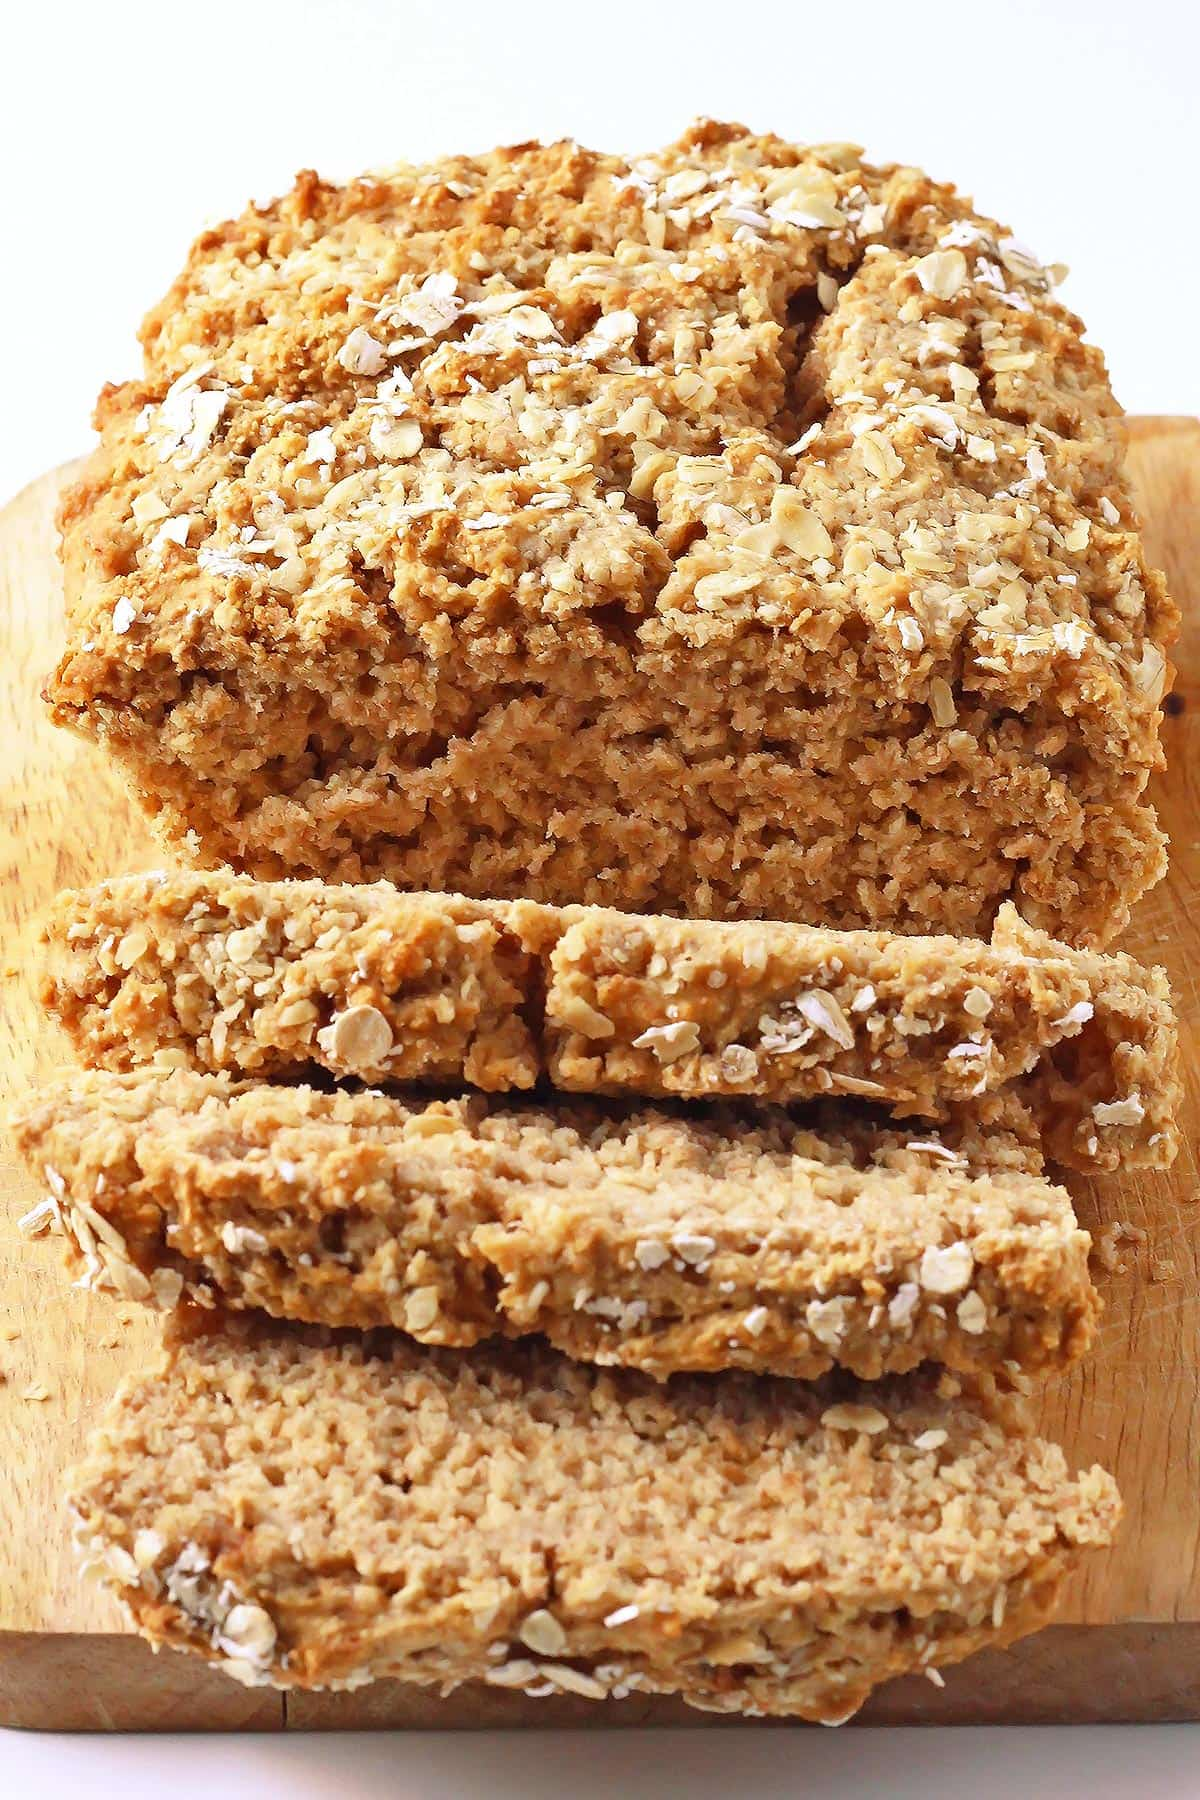 Sliced Whole Wheat Beer Bread